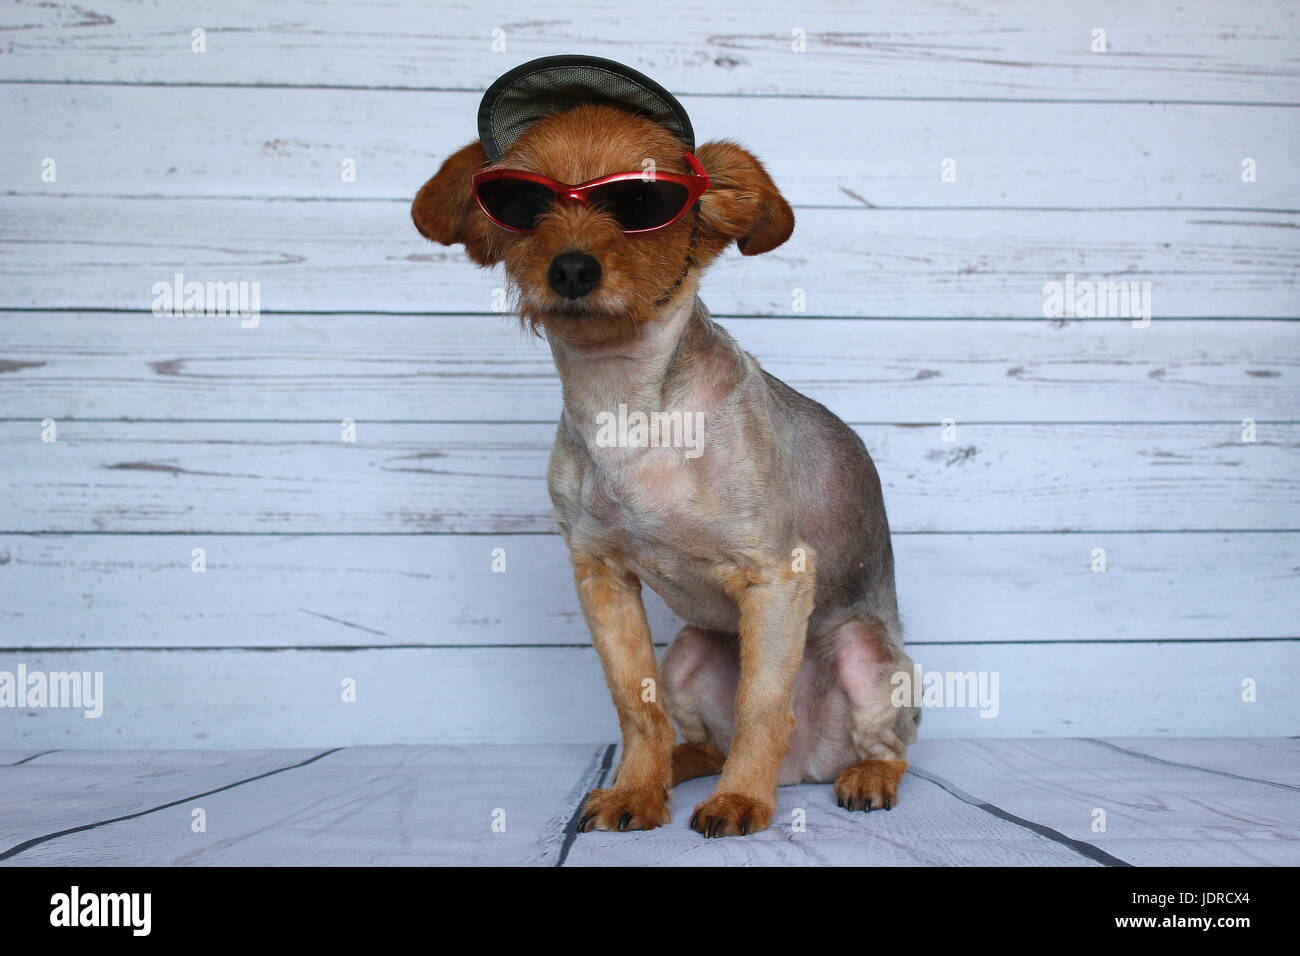 Small dog in sitting position dressed with a cap and sunglasses - Stock Image